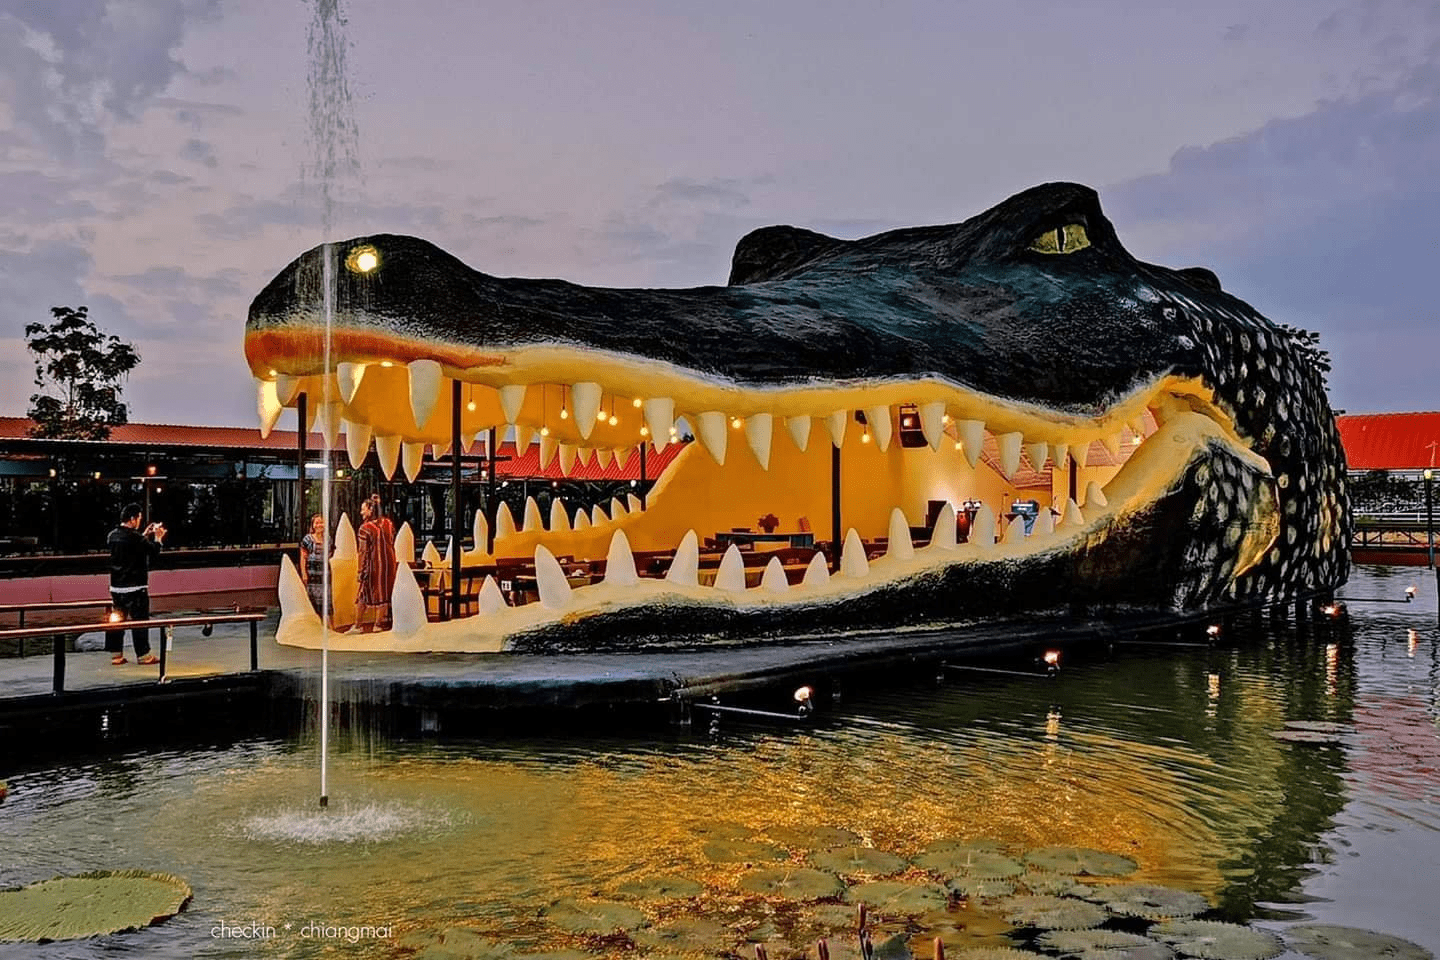 Restaurant with a giant crocodile head in Chiang Mai